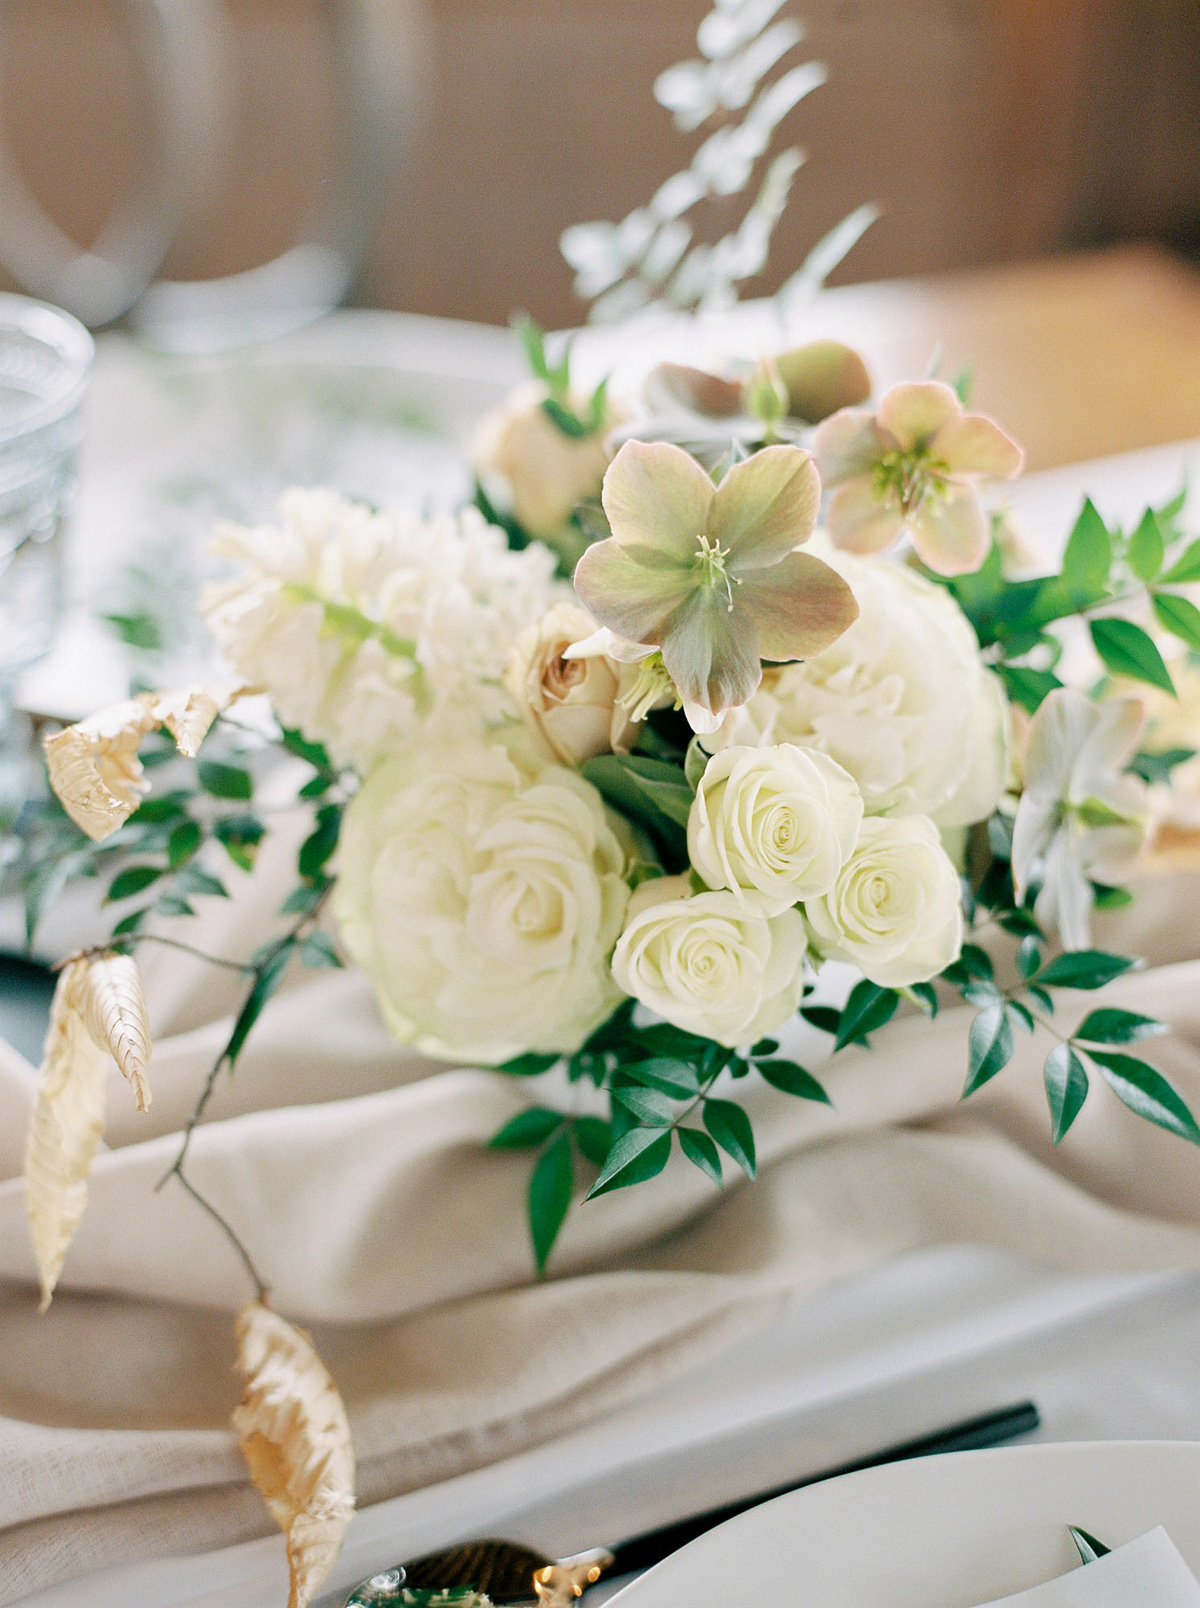 will-reid-photo-vineyard-bride-swish-list-kurtz-orchards-market-niagara-on-the-lake-wedding-editorial-4.jpg